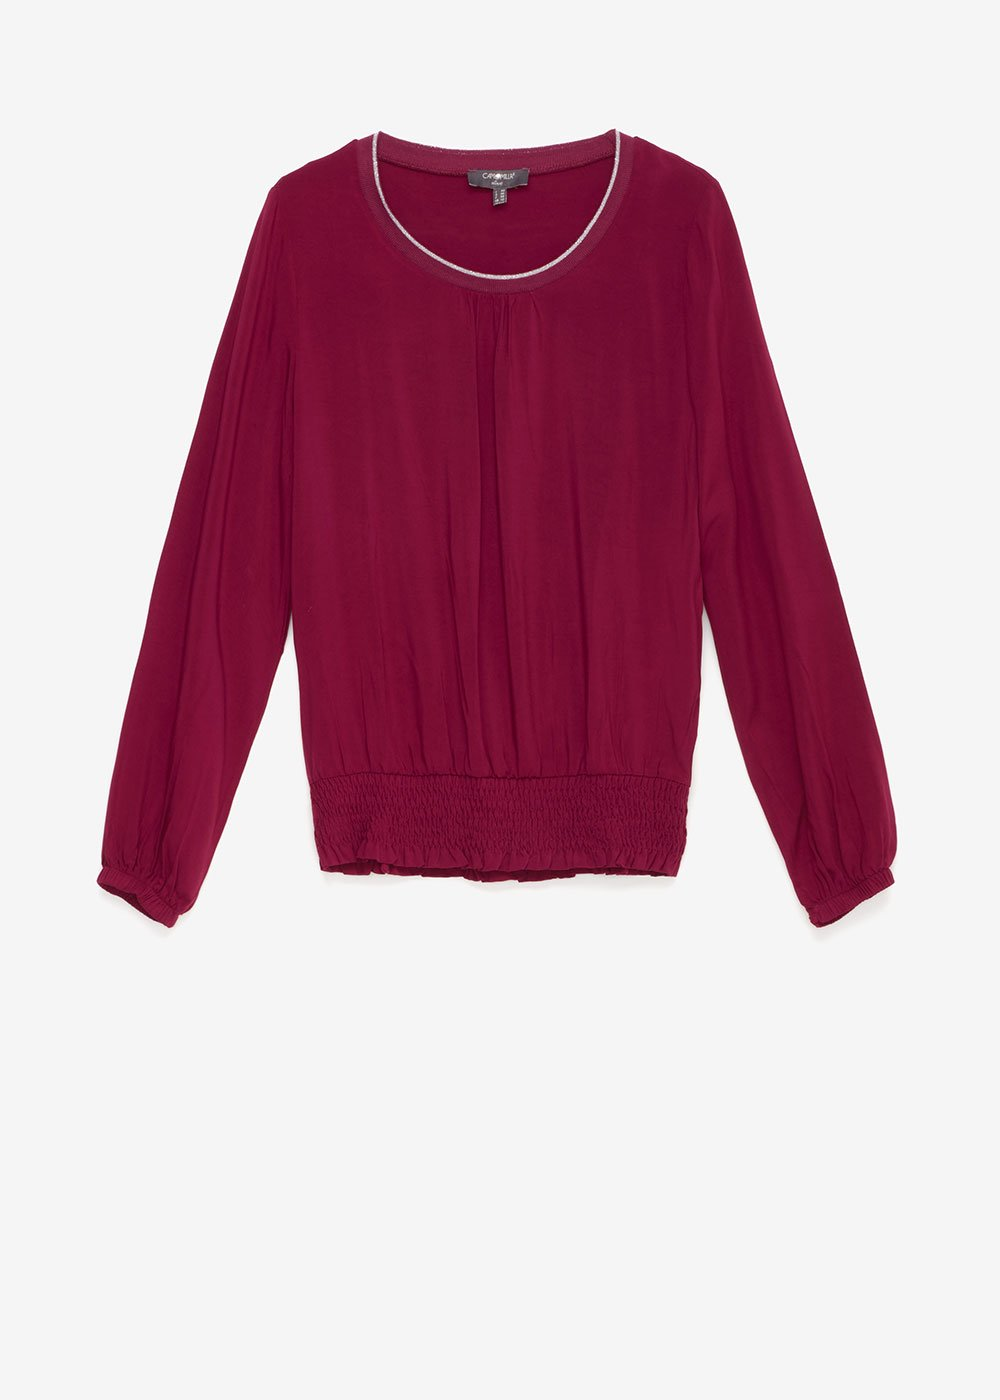 Samantha round-neck t-shirt - Rosee' - Woman